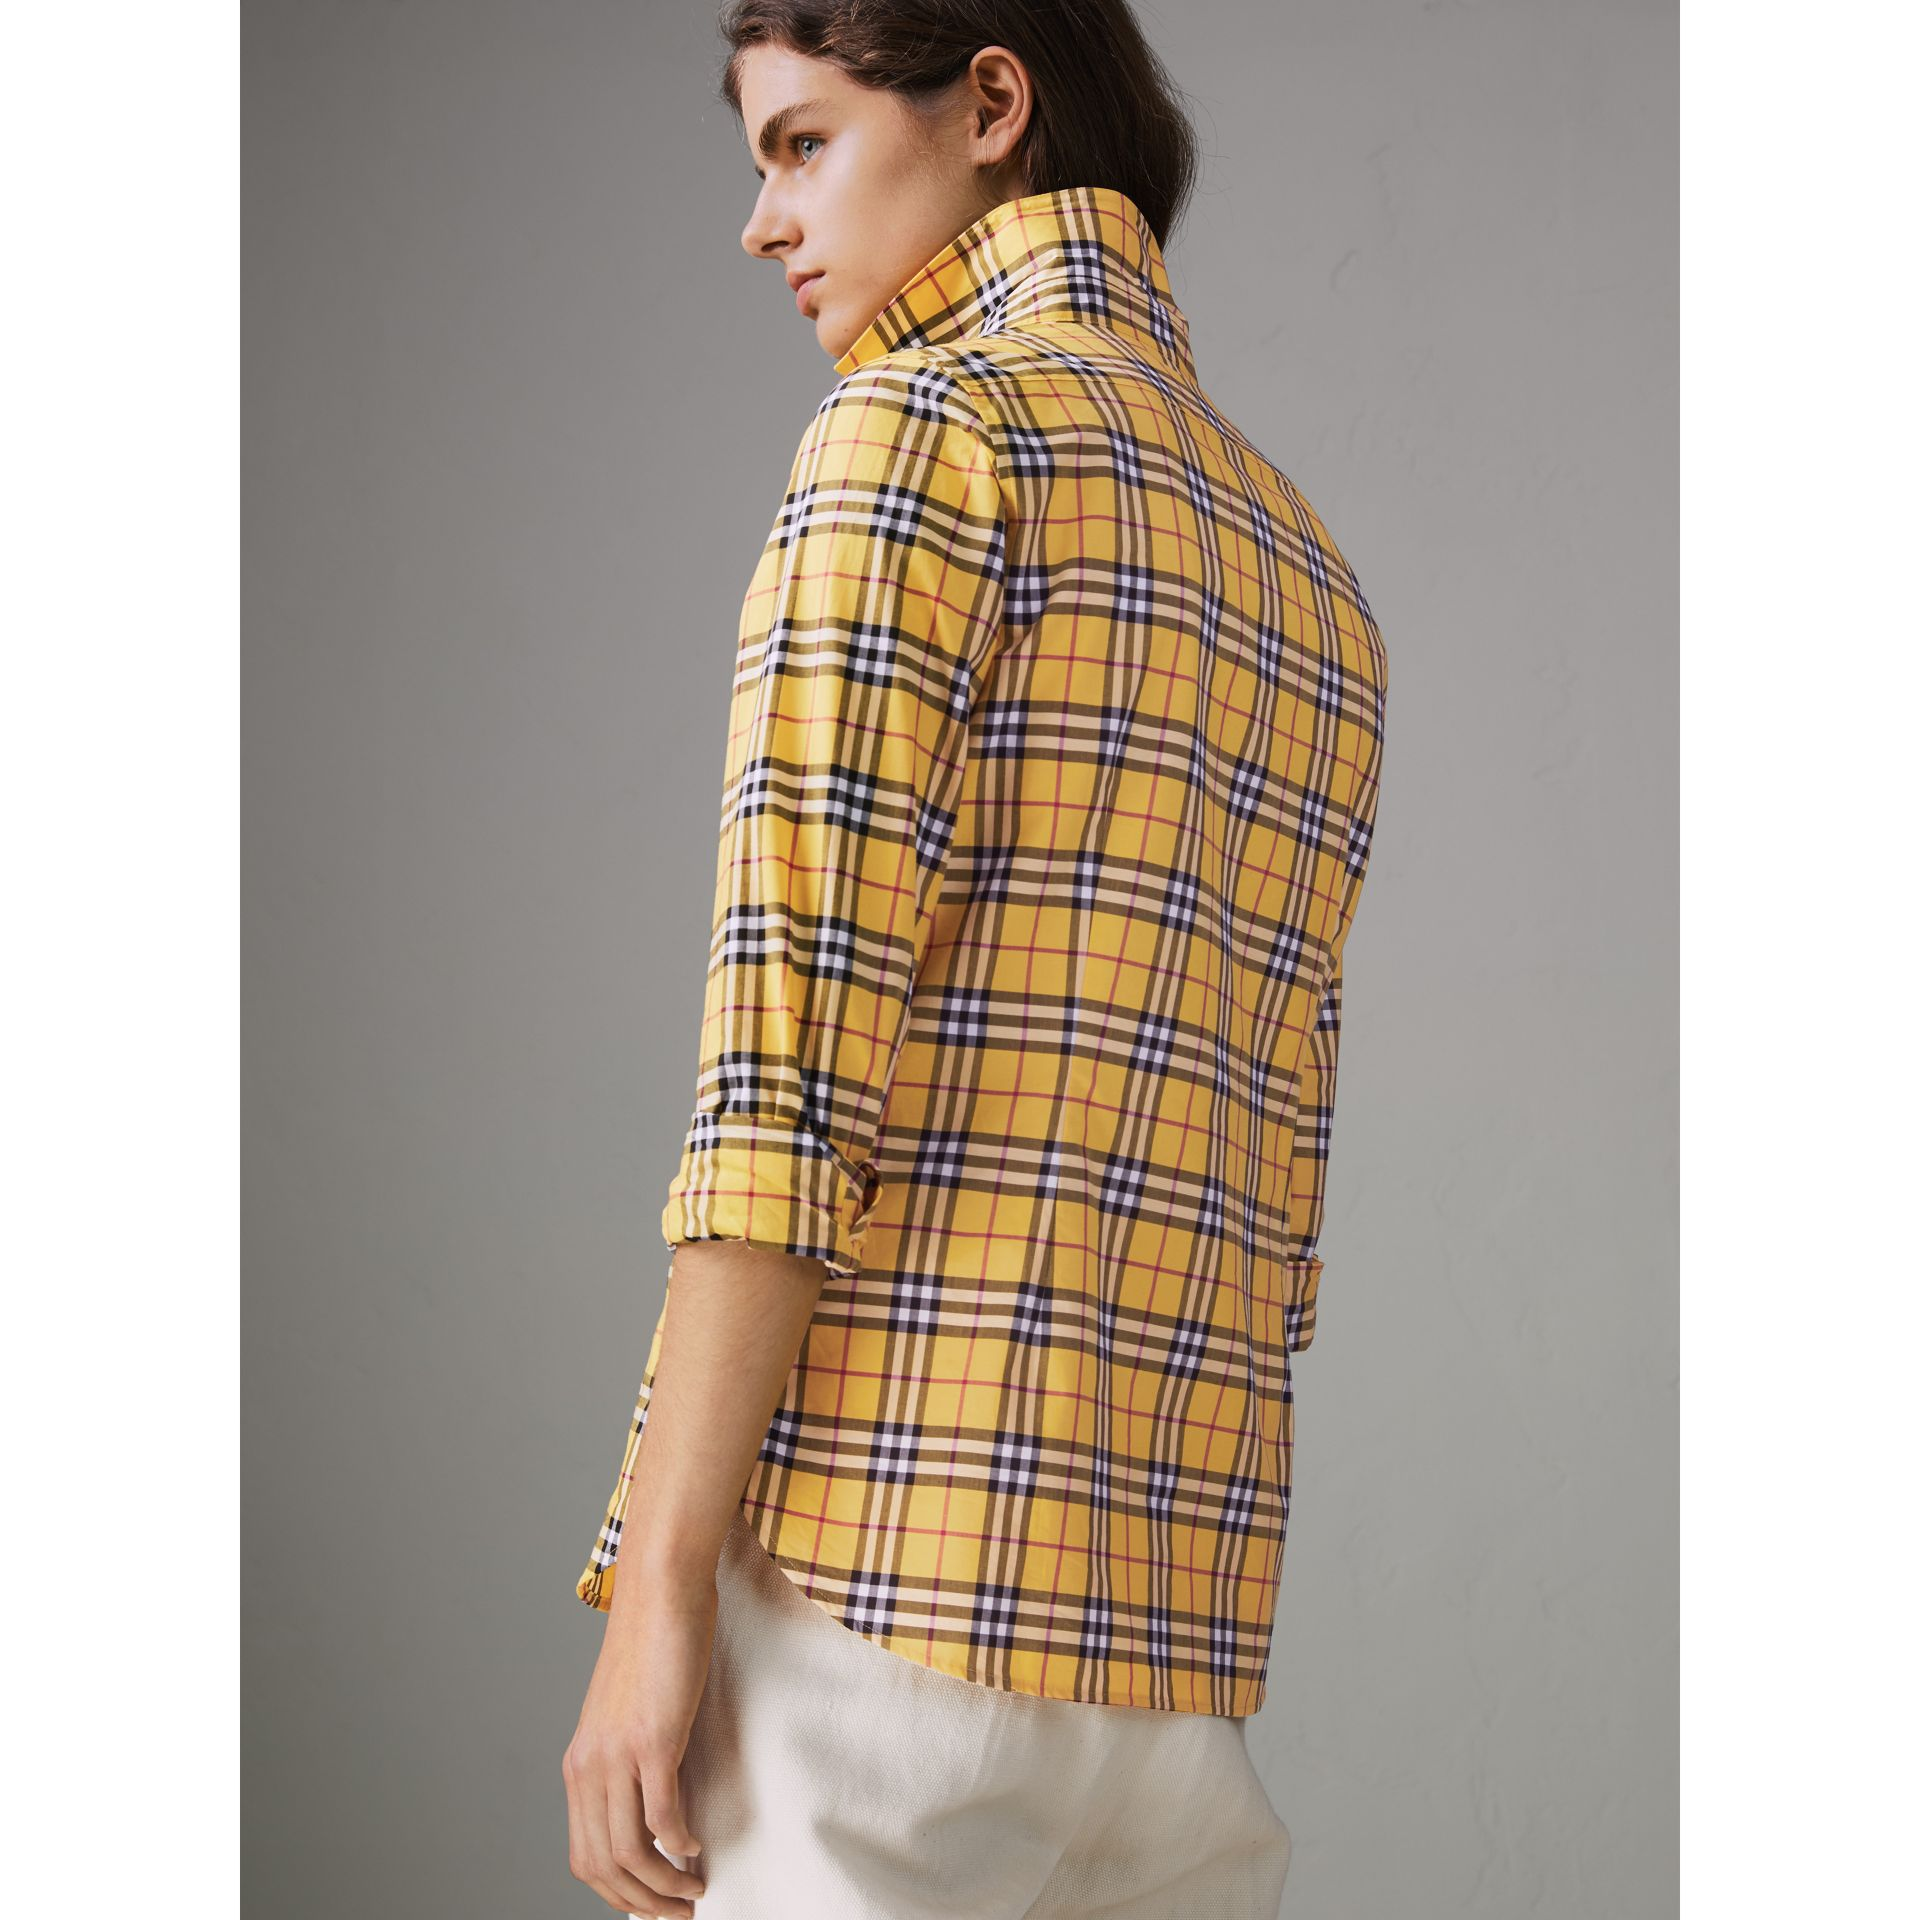 Check Cotton Shirt in Bright Ochre Yellow - Women | Burberry - gallery image 2